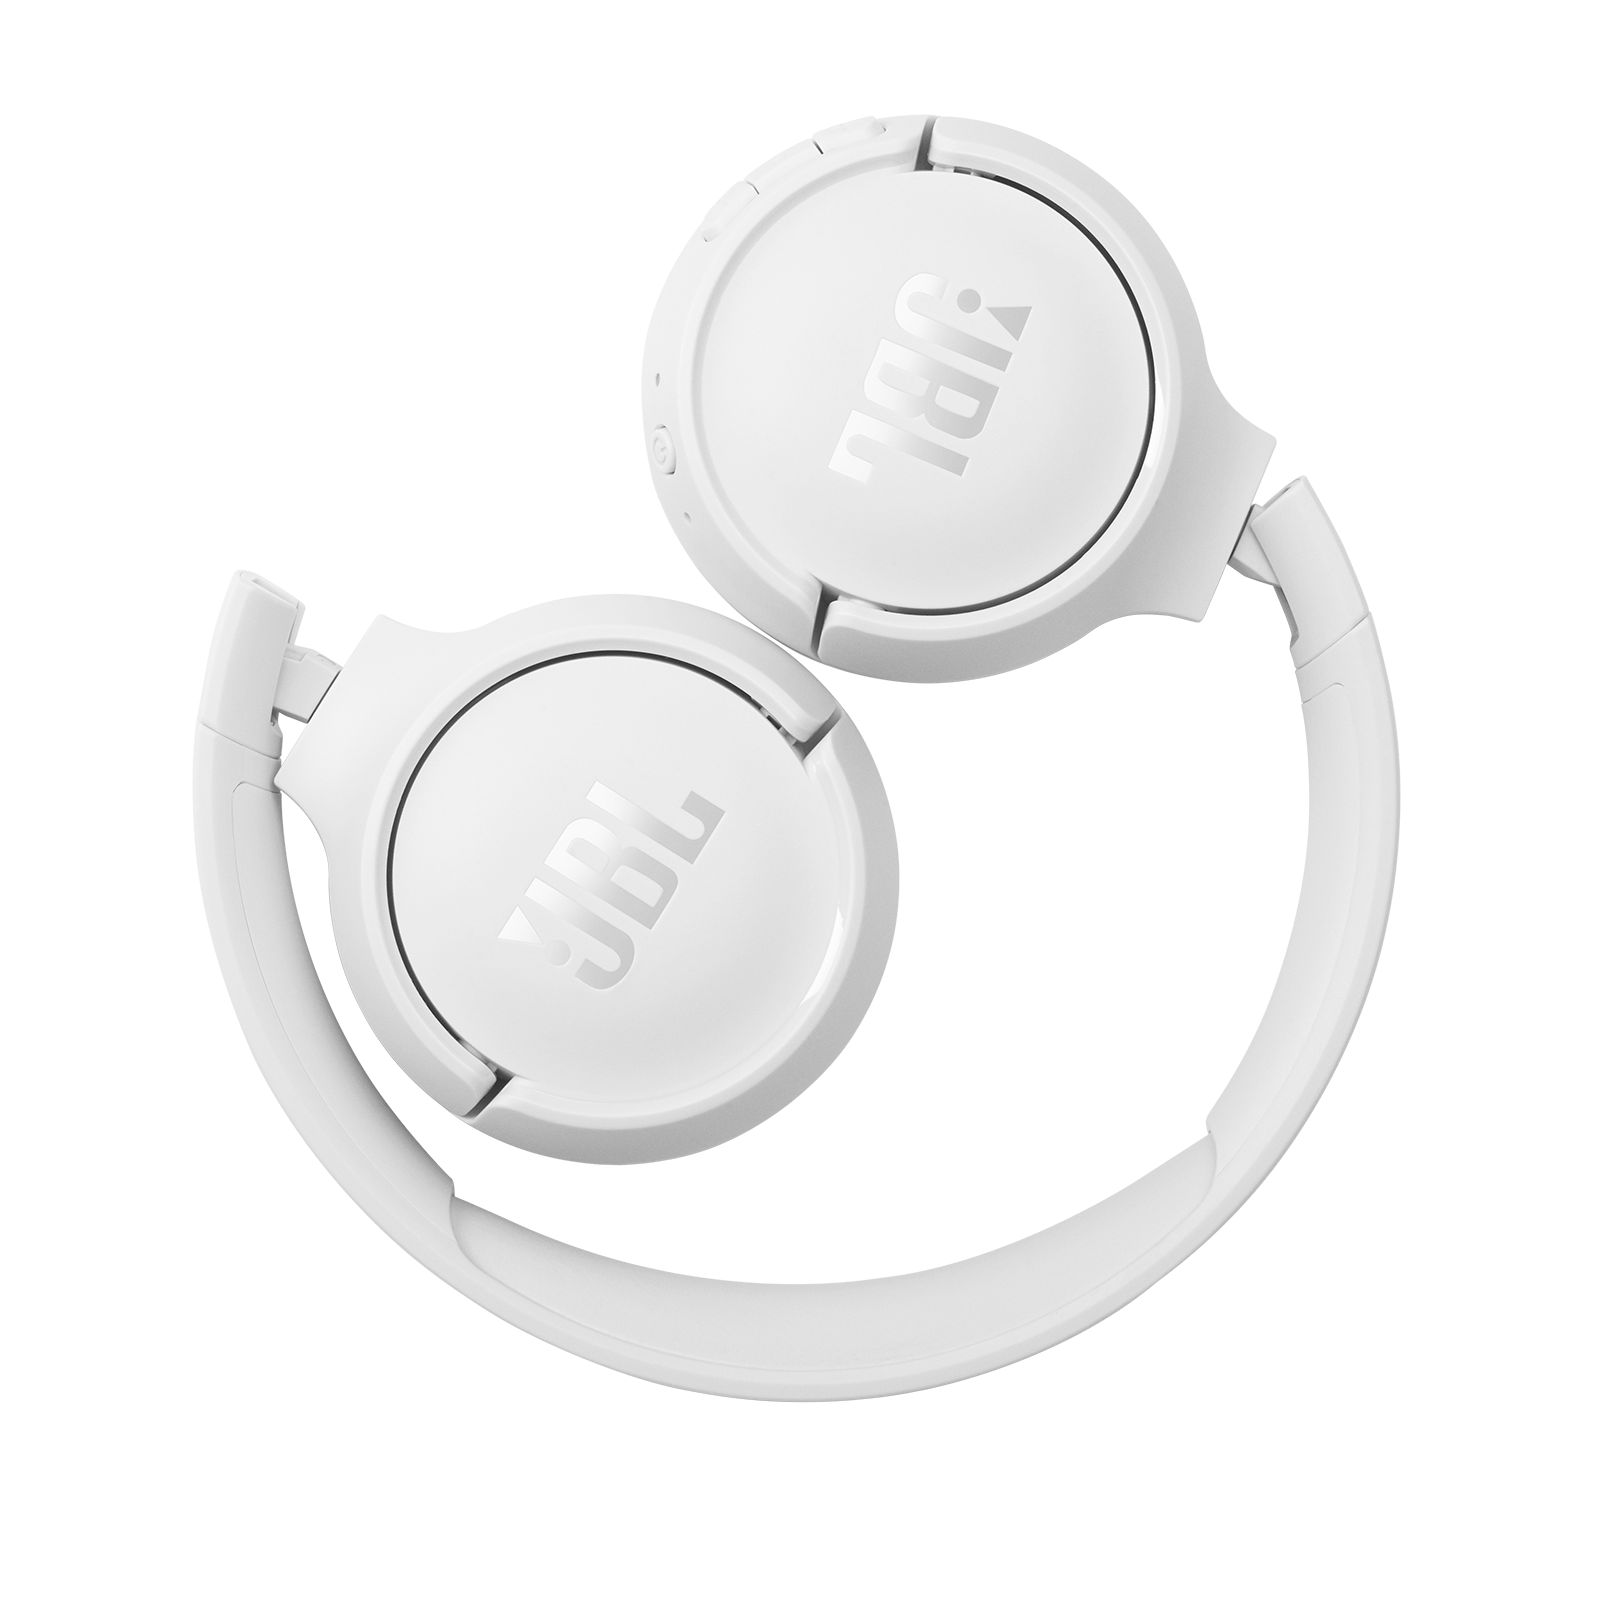 JBL Tune 510BT - White - Wireless on-ear headphones - Detailshot 3